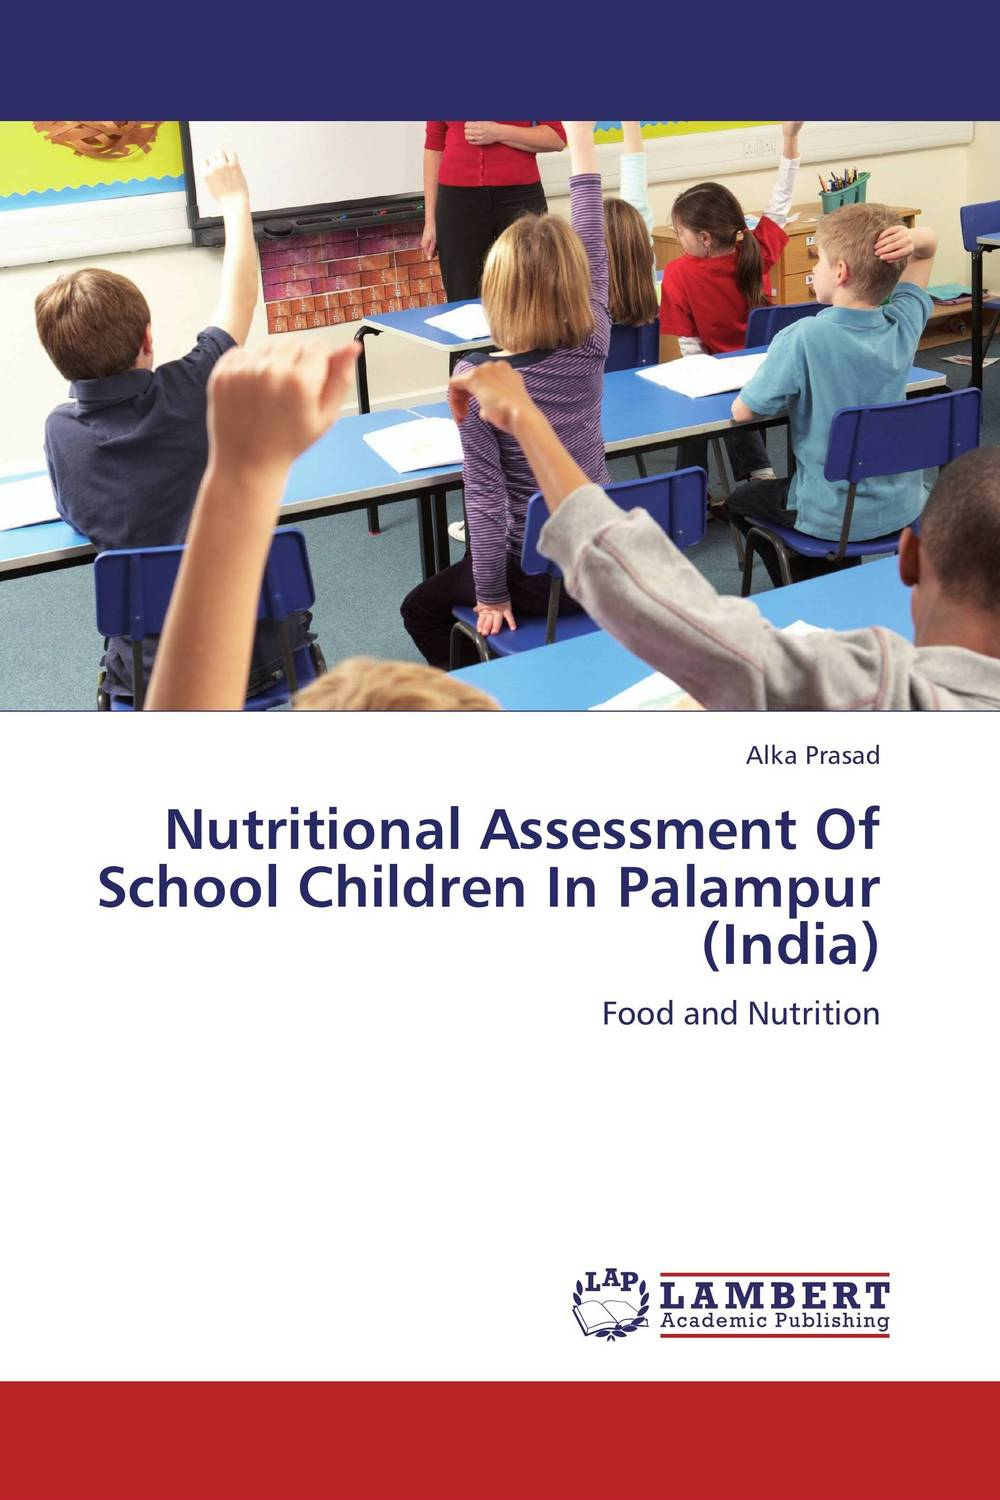 Nutritional Assessment Of School Children In Palampur (India)